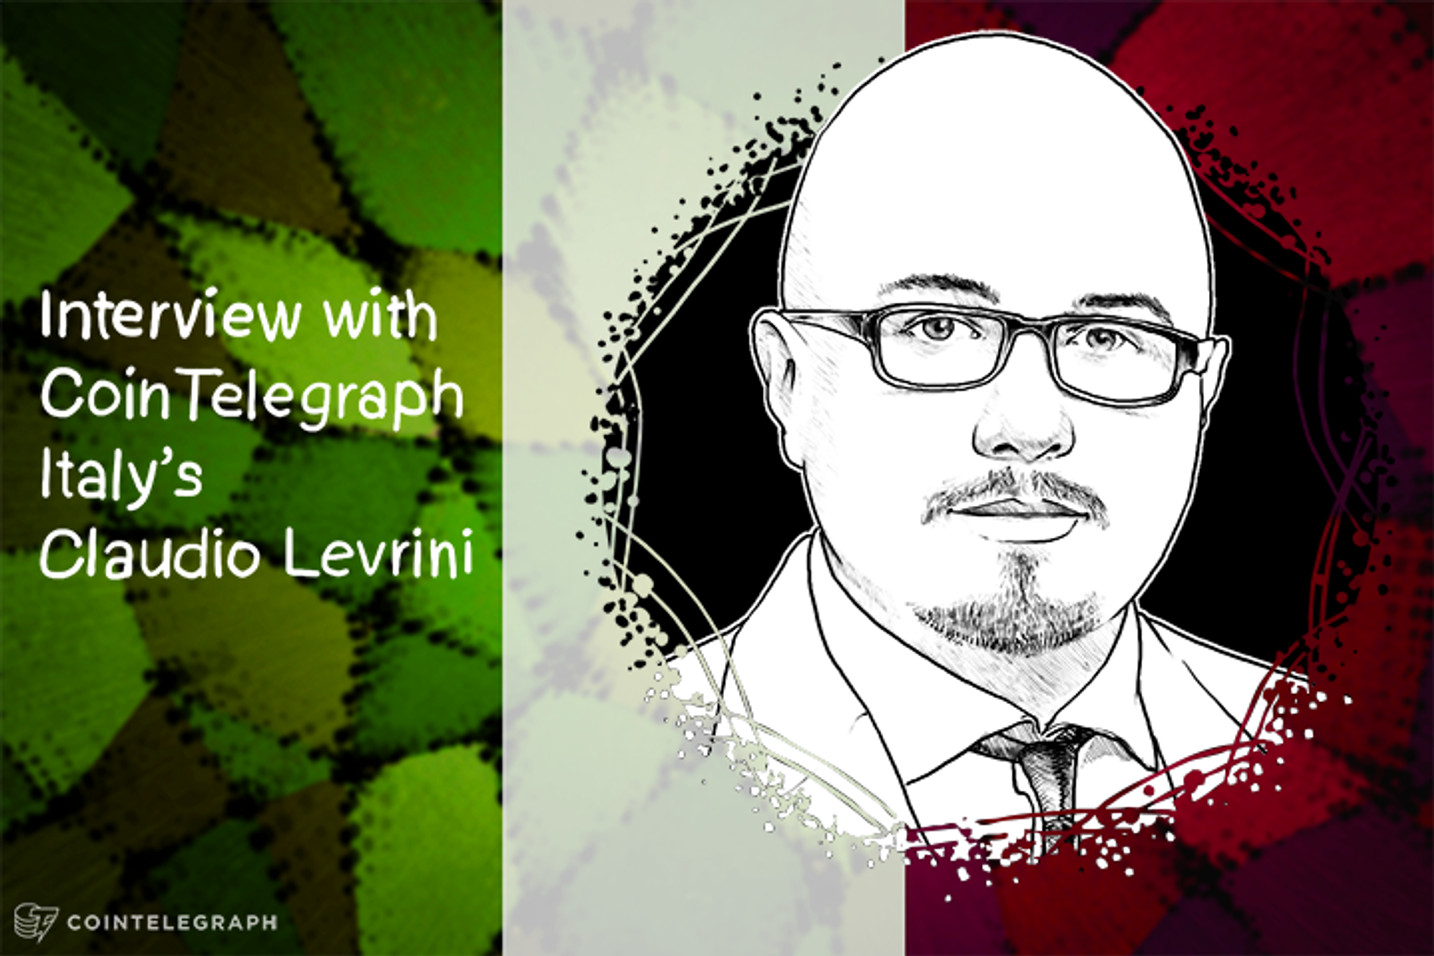 Crypto for All! An Interview with Cointelegraph Italy's Claudio Levrini